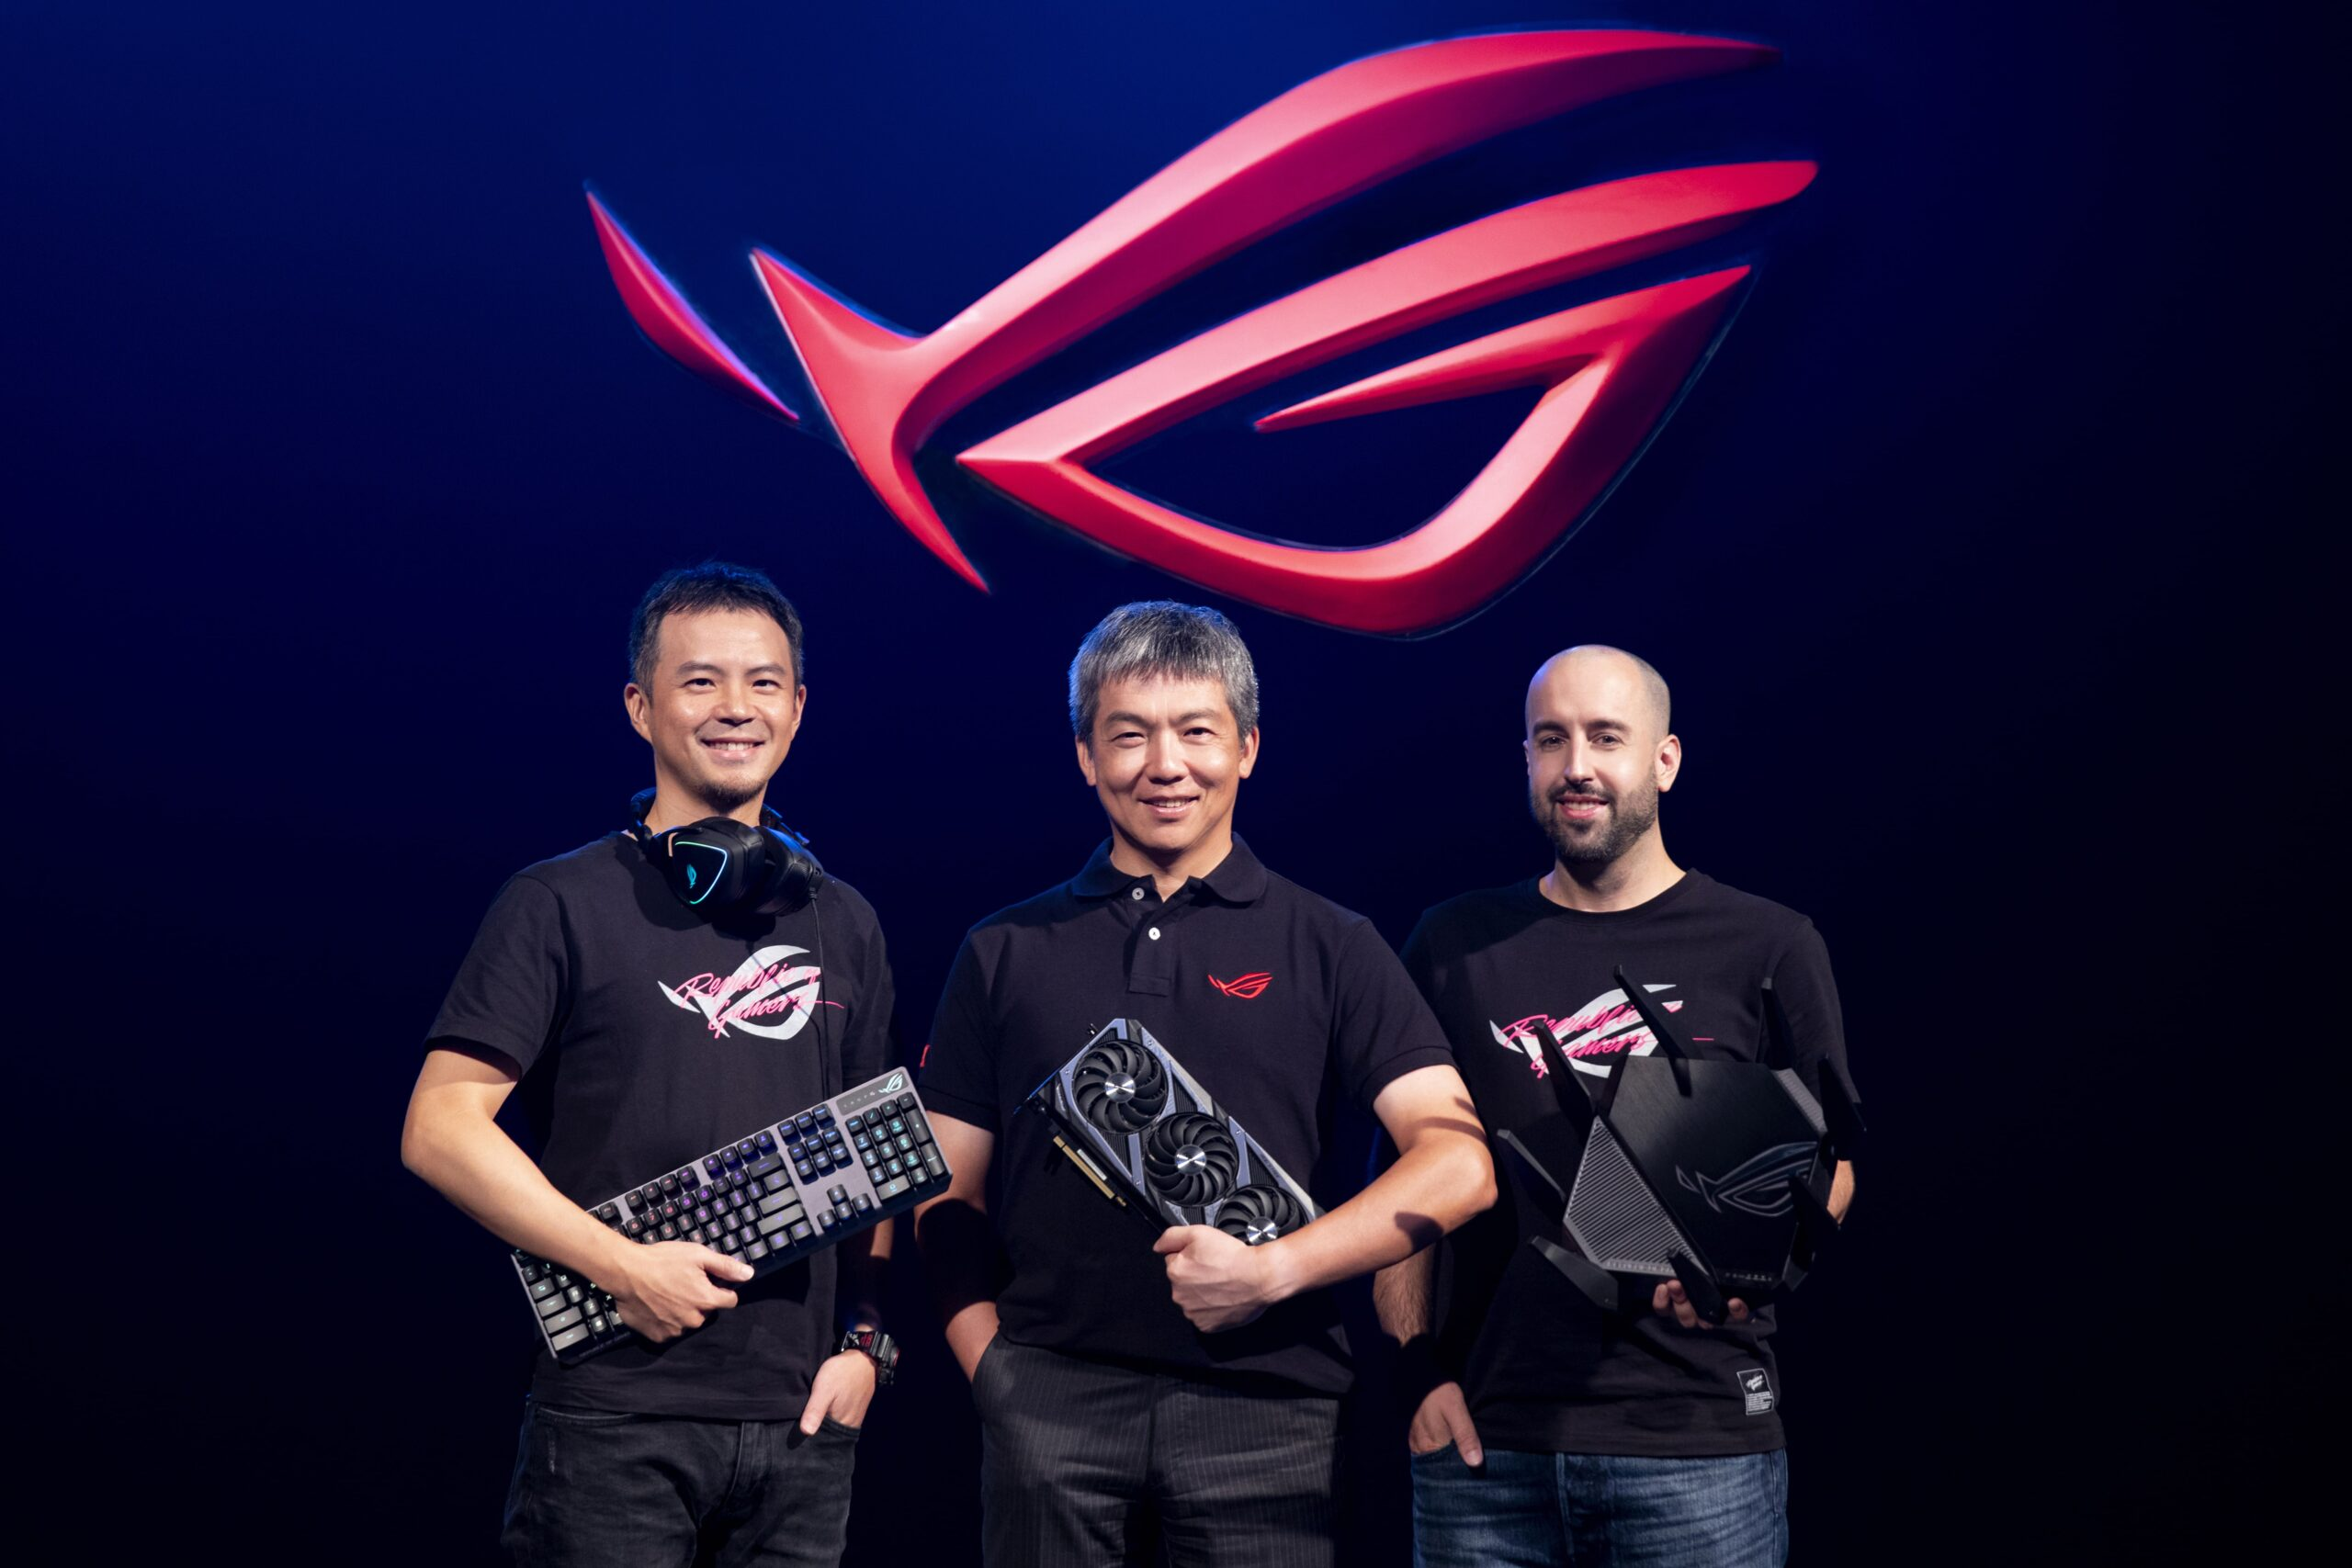 Asus ROG Meta Buffs Event Unleashes New Gaming Routers And Peripherals 4